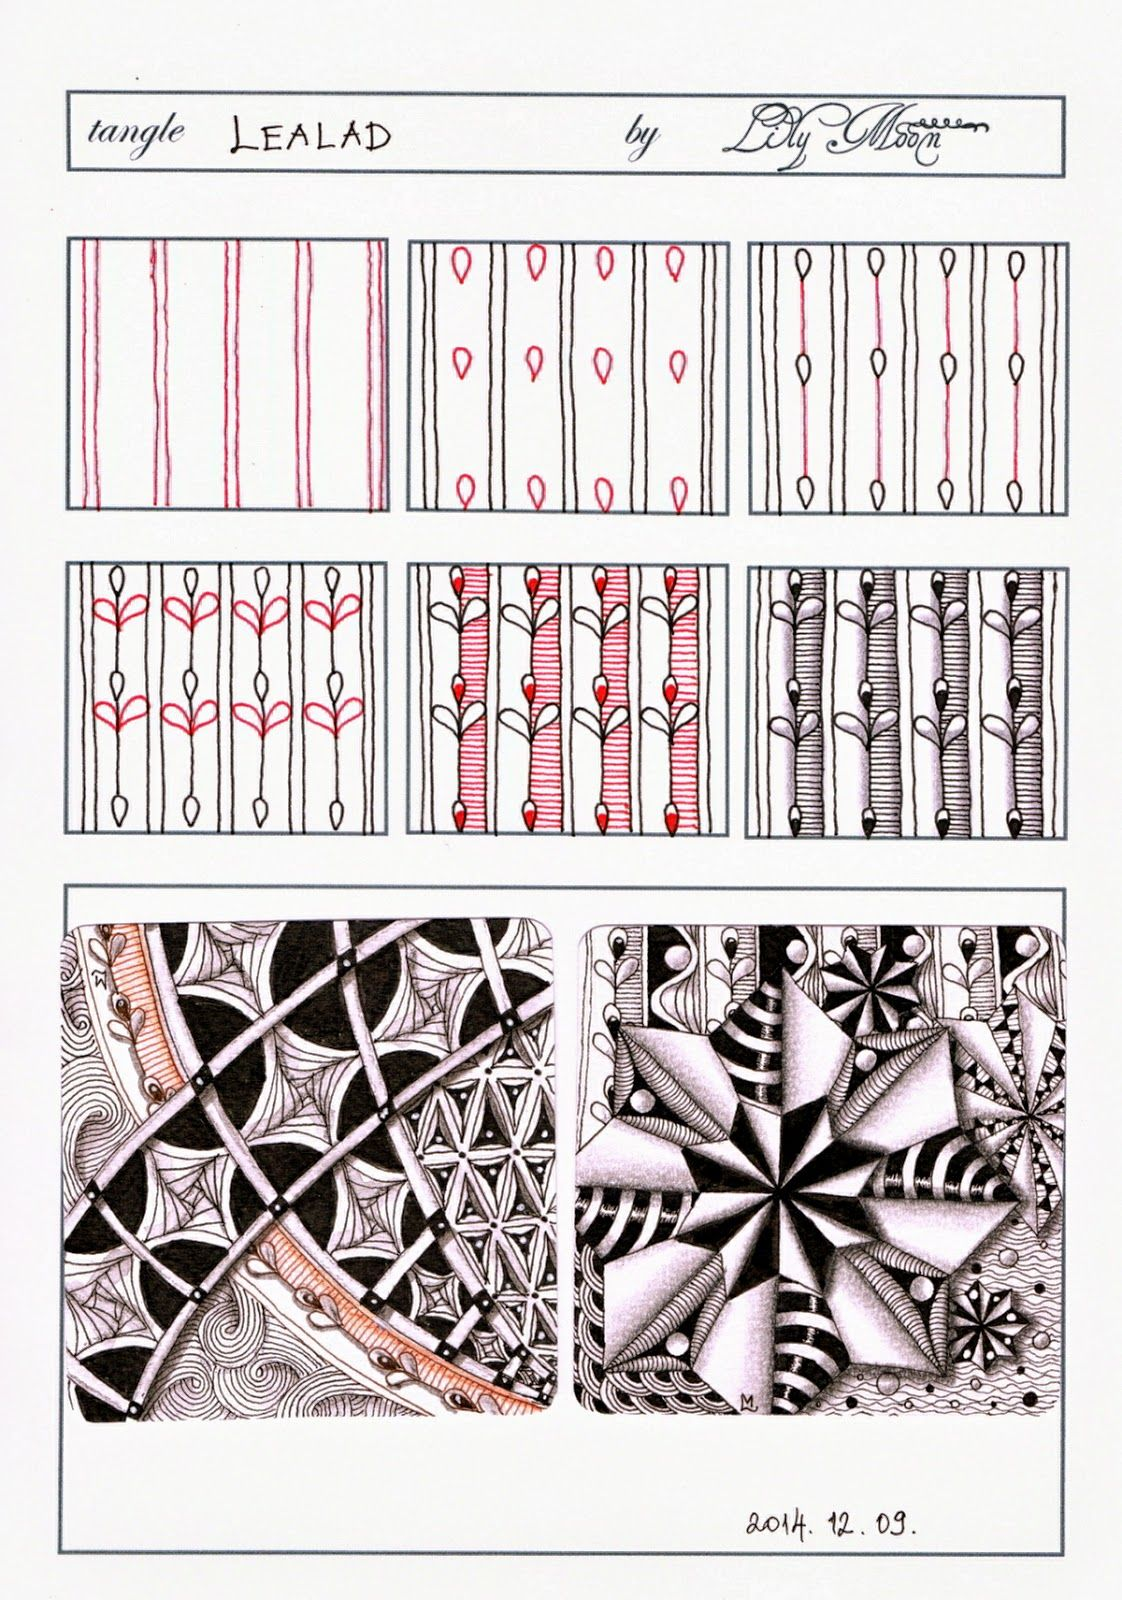 Lily's Tangles: My new Tangle: Lealad | Zentangle patterns ...